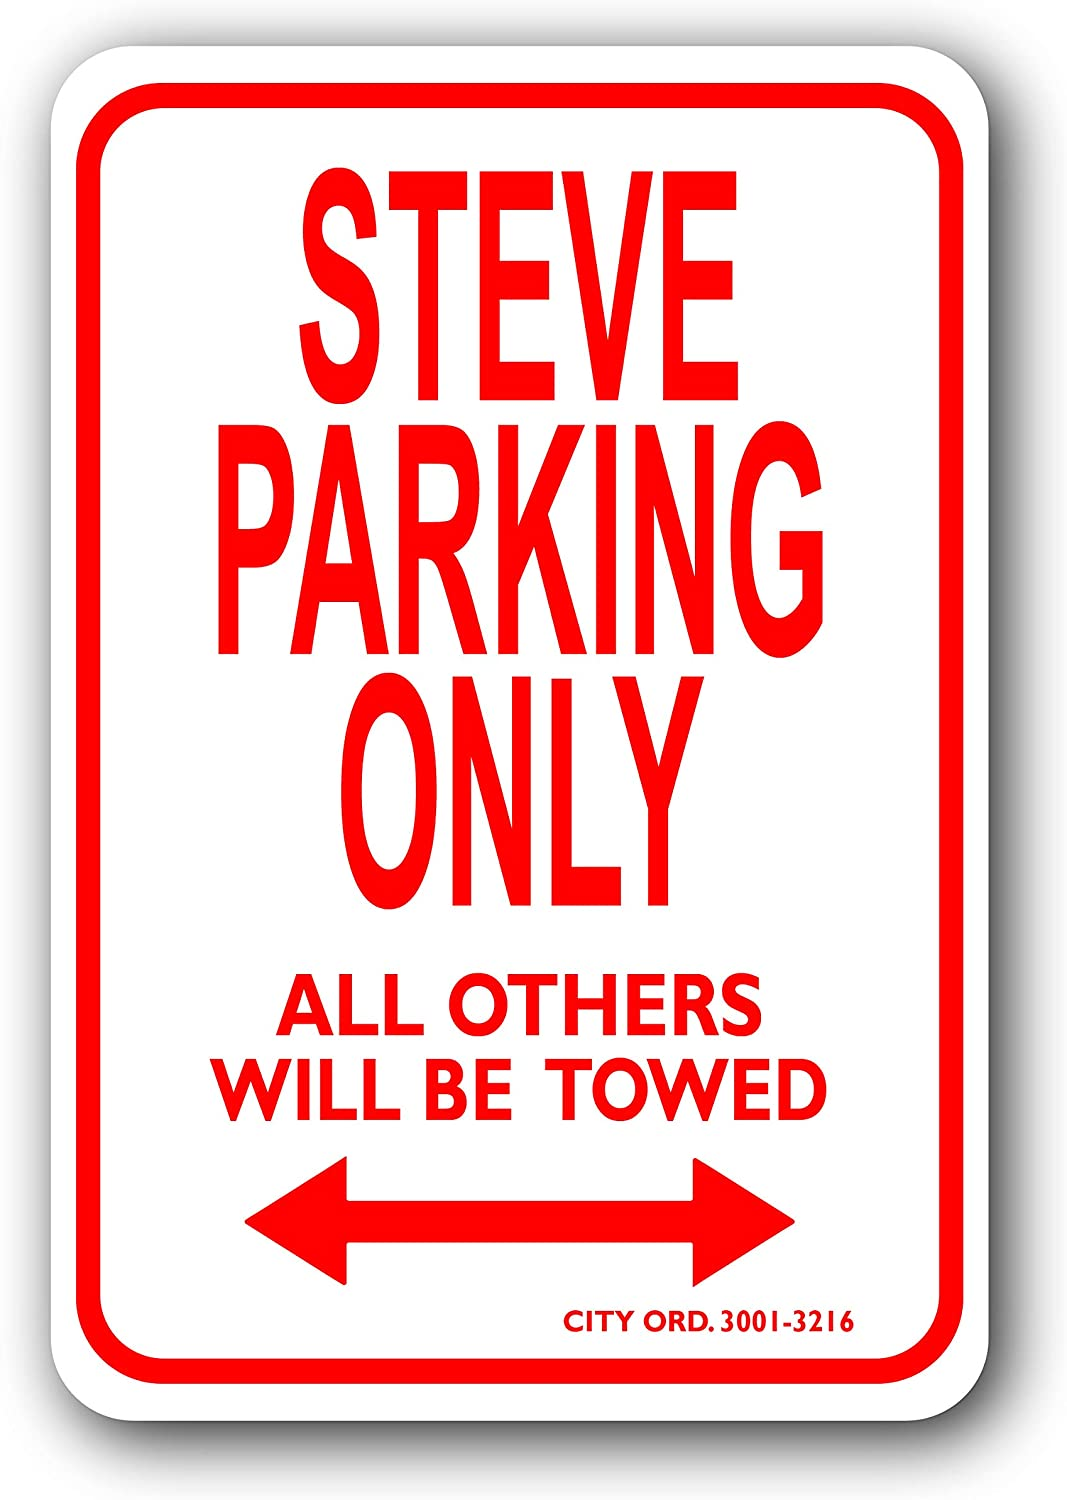 Steve Mini Parking Sign - Personalized Parking Sign - Novelty Sign for Kids Room/Office Parking/Childrens Room/Man Cave (Car Decals, Street Signs)